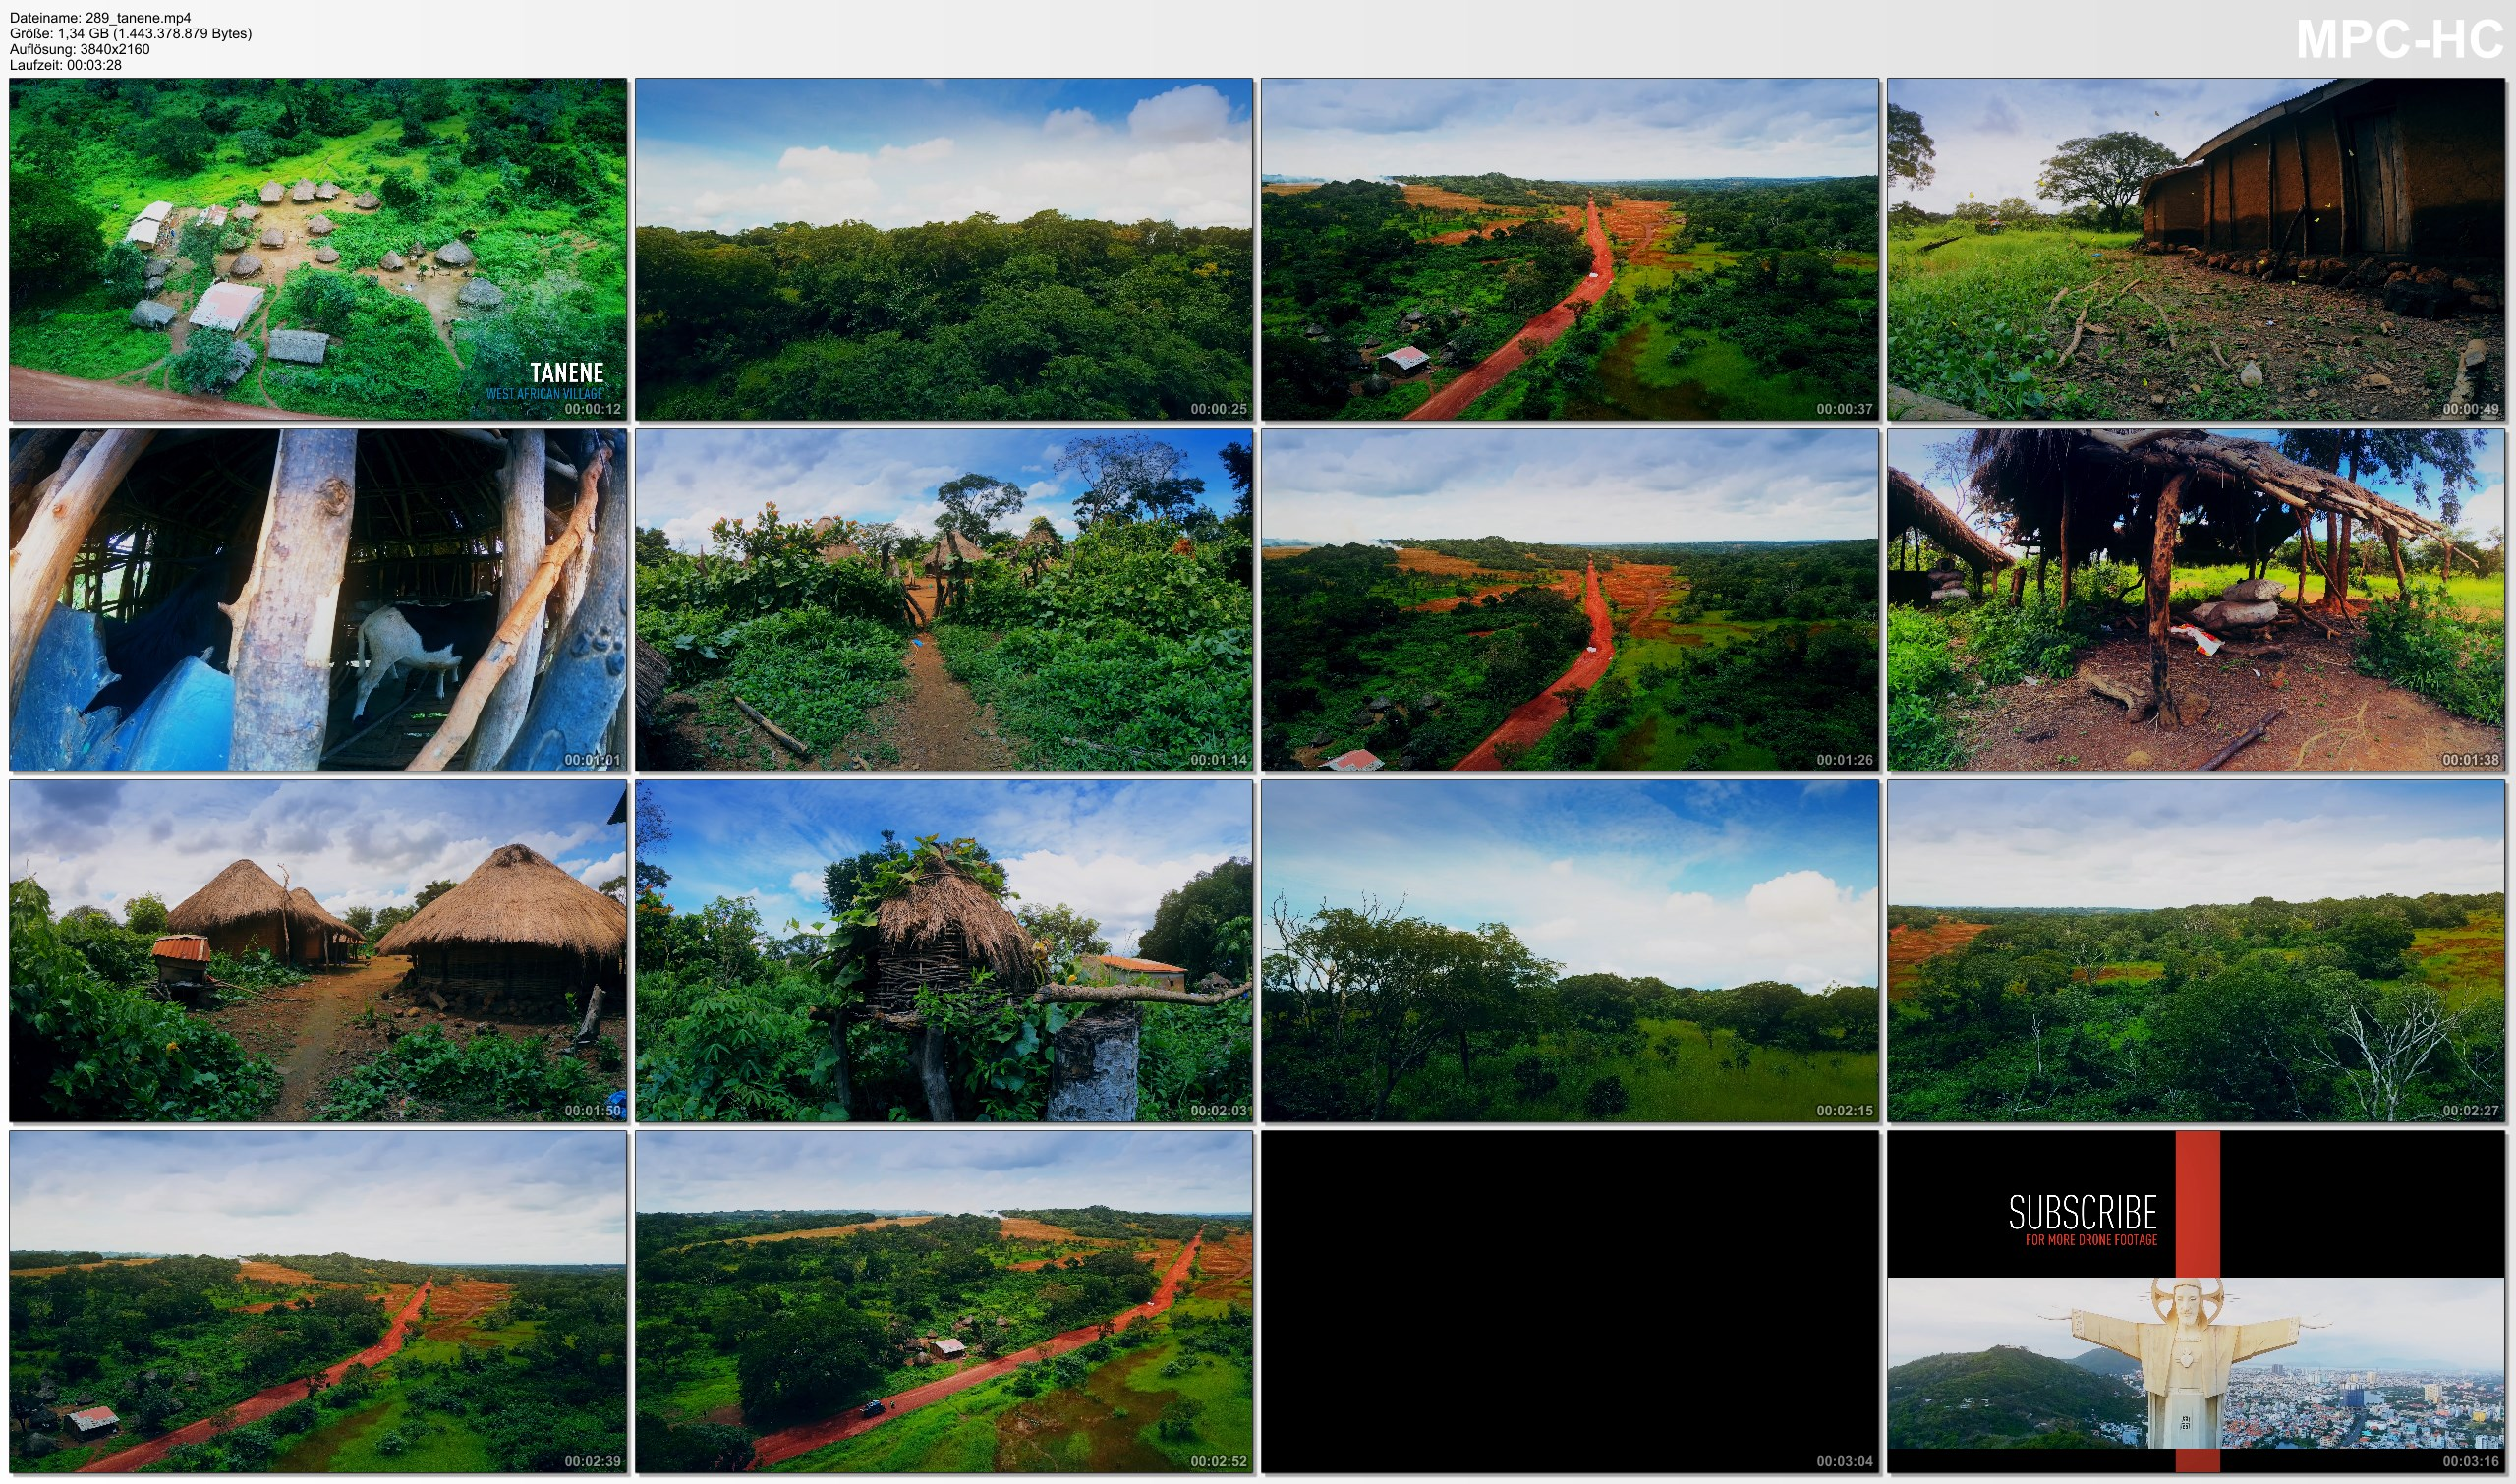 Pictures from Video 【4K】Footage | Tanene, Guinea - A traditional Village in West Africa 2019 .: Aerial Drone Birds View